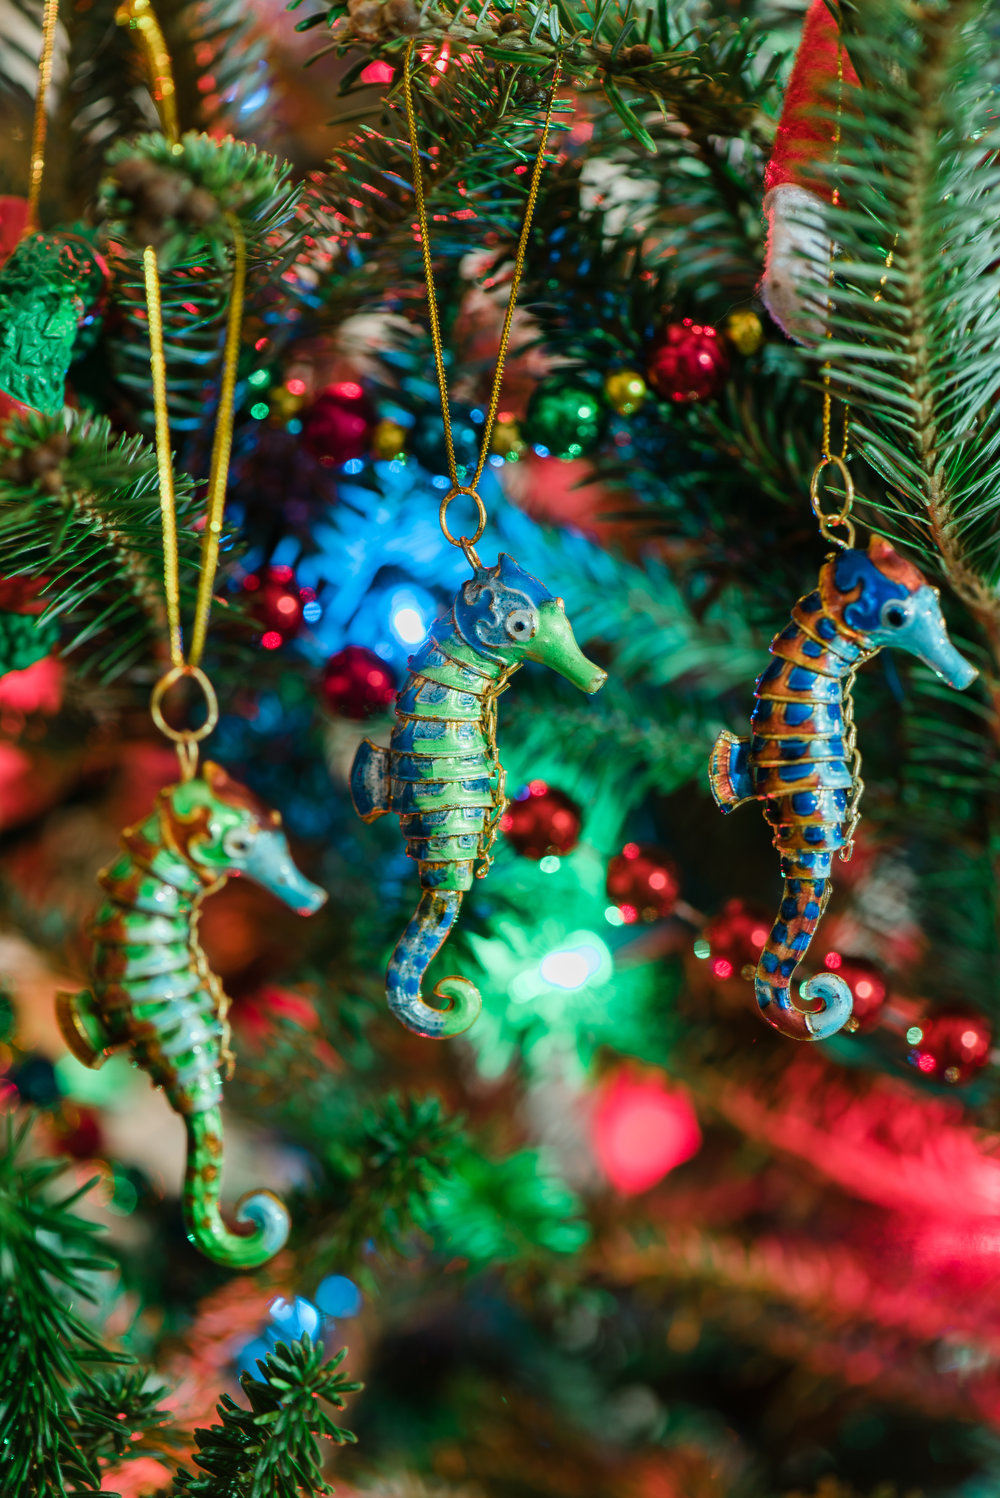 Seahorse-Christmas-Tree-Ornaments-Sarah-Danielle-Portraits-Florida-Photographer